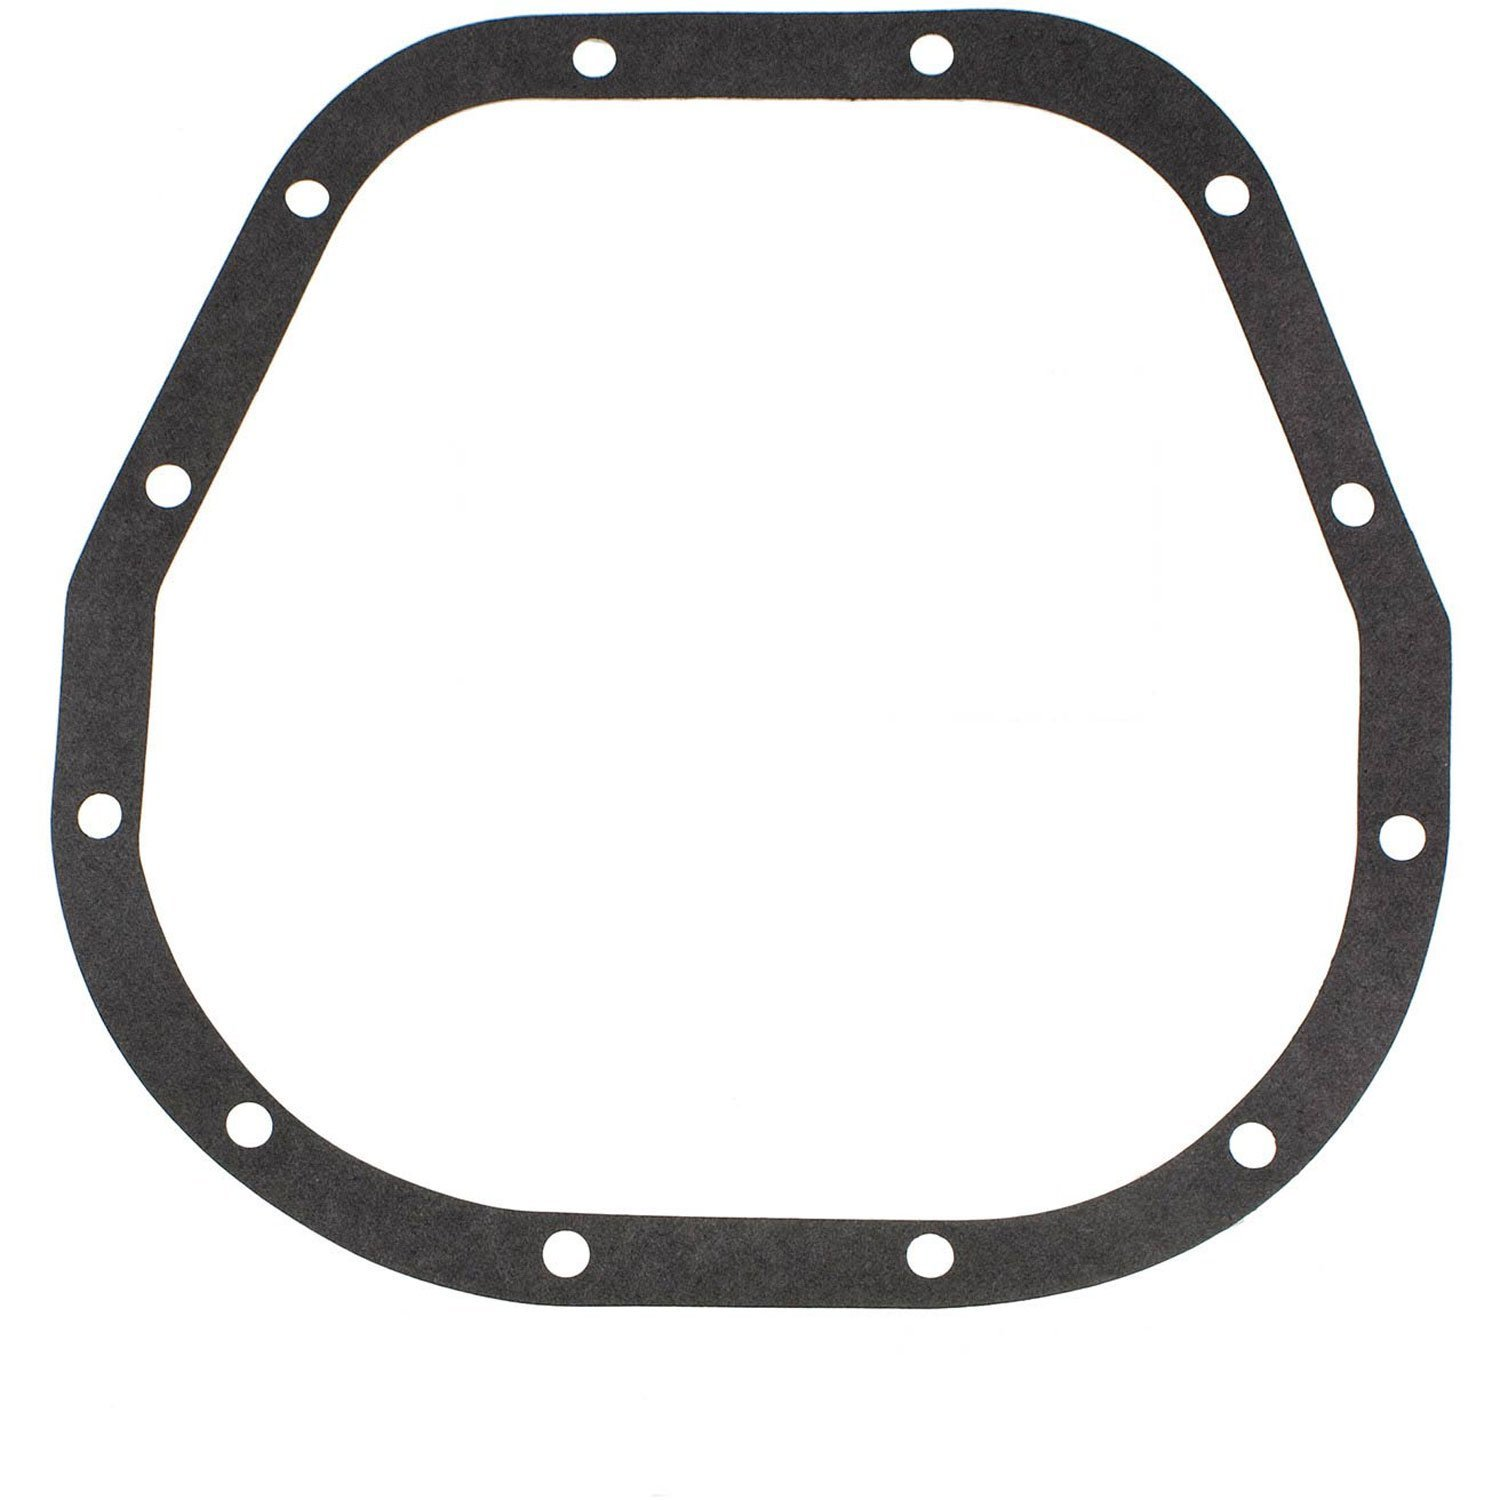 Motive Gear 5125 Differential Cover Gasket Motive Gear Performance Differential